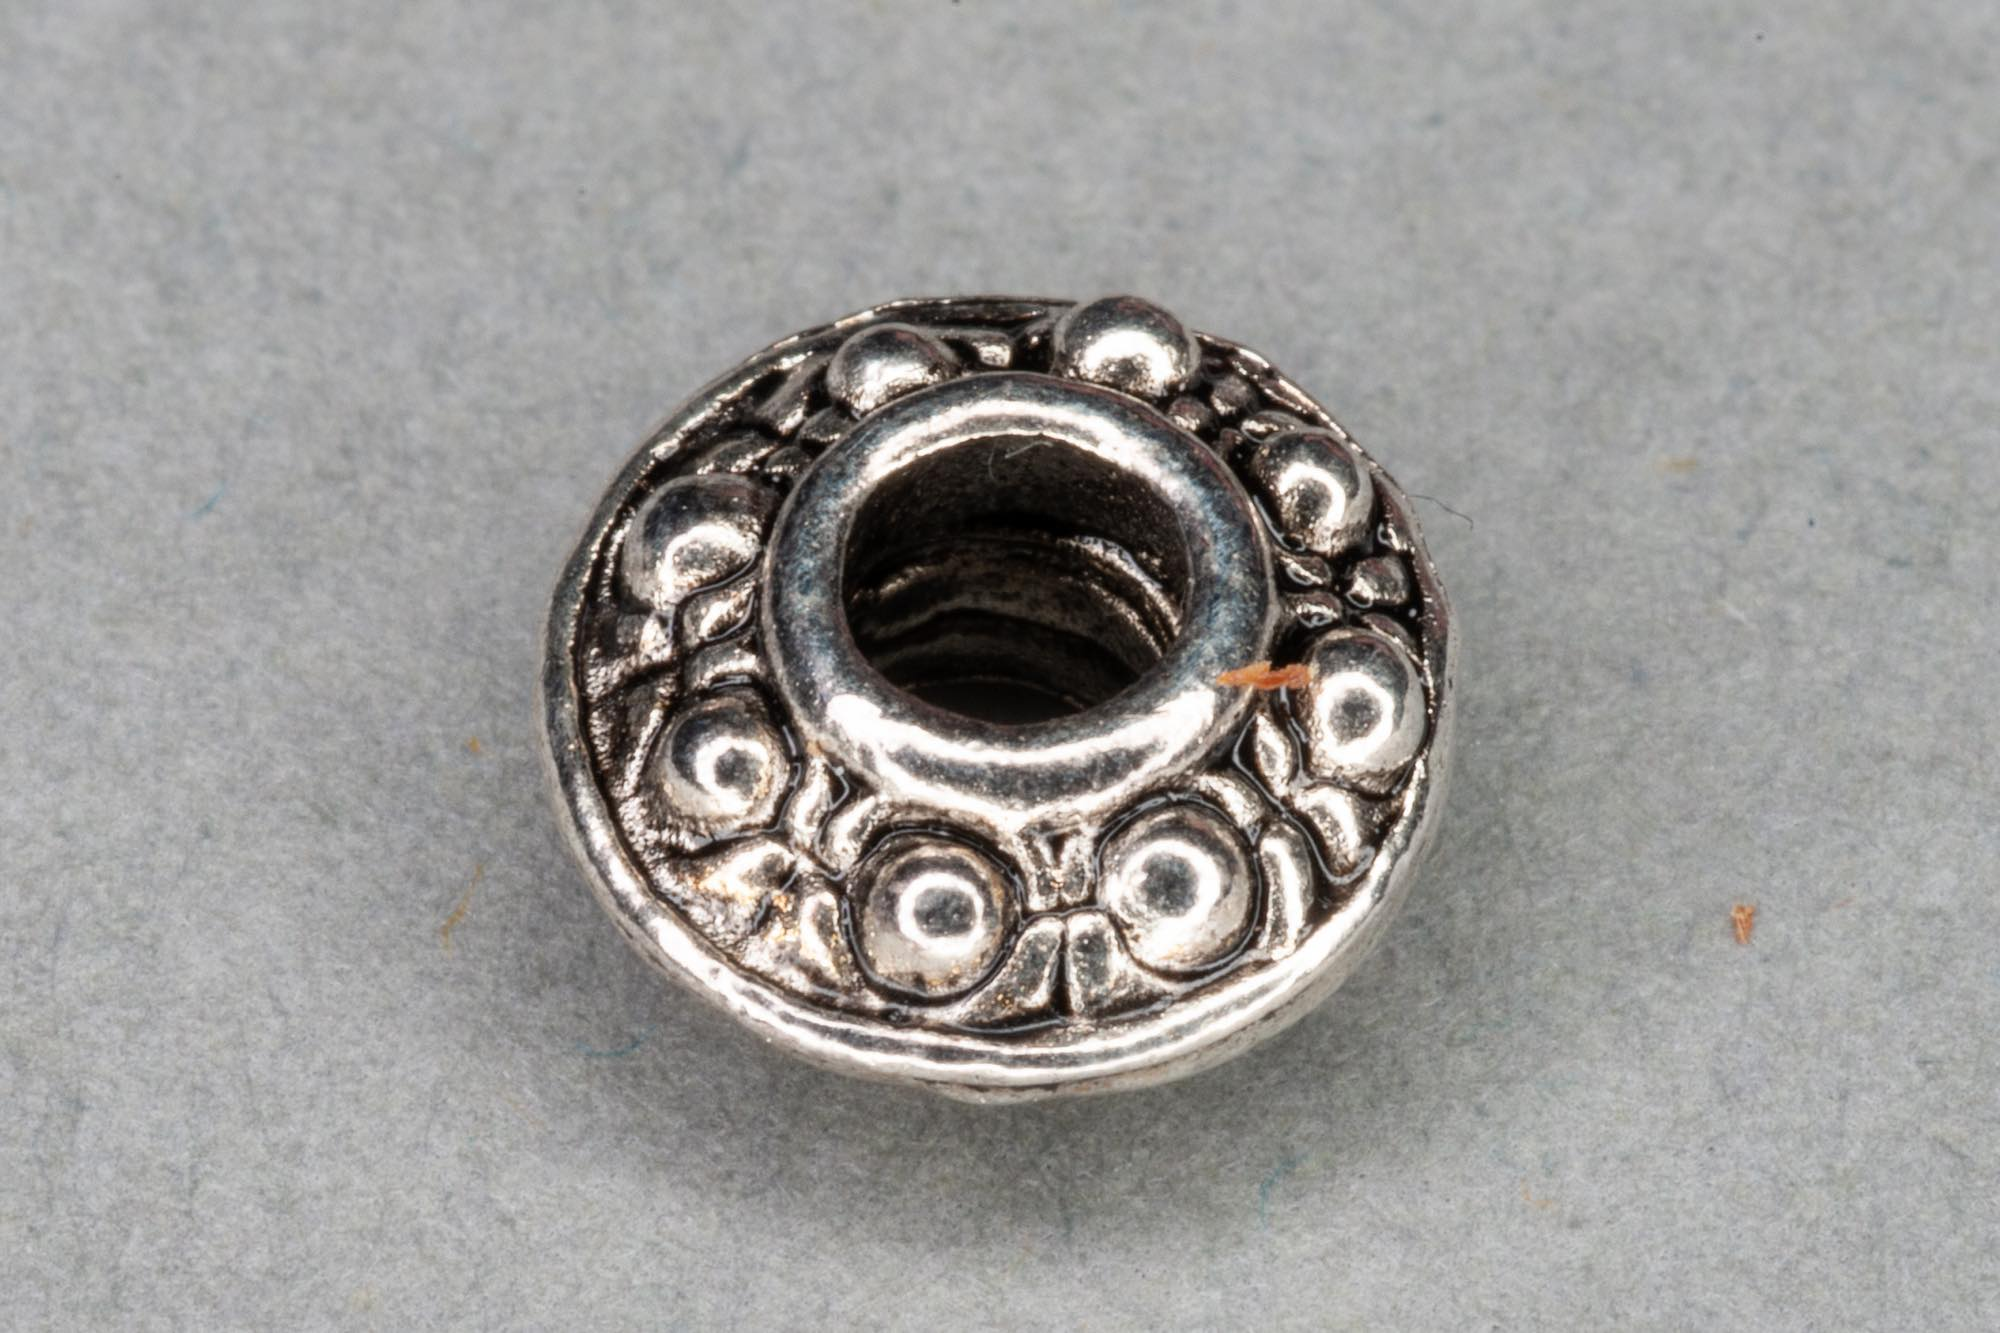 Antique Silver Plated Flat Bicone Spacer Bead 9x4mm, 1mm hole